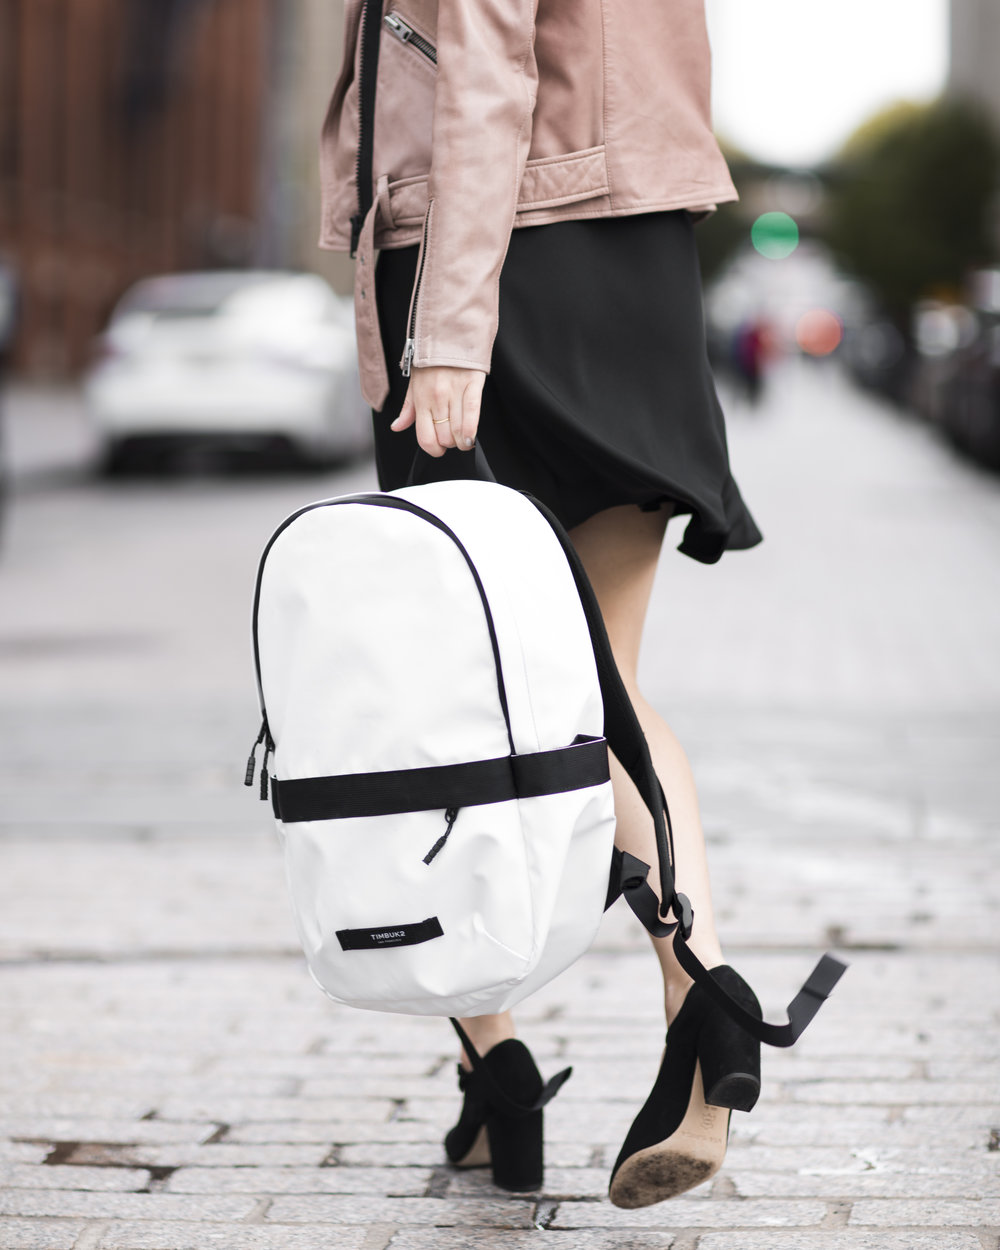 The Perfect Travel Backpack Timbuk2 Louboutins & Love Fashion Blog Esther Santer NYC Street Style Blogger Outfit OOTD Trendy All Saints Blush Pink Leather Backpack Black Pumps Shoes Heels Slip Dress Hair Braids Ponytail Women Girls Inspo Bag Vacation.jpg